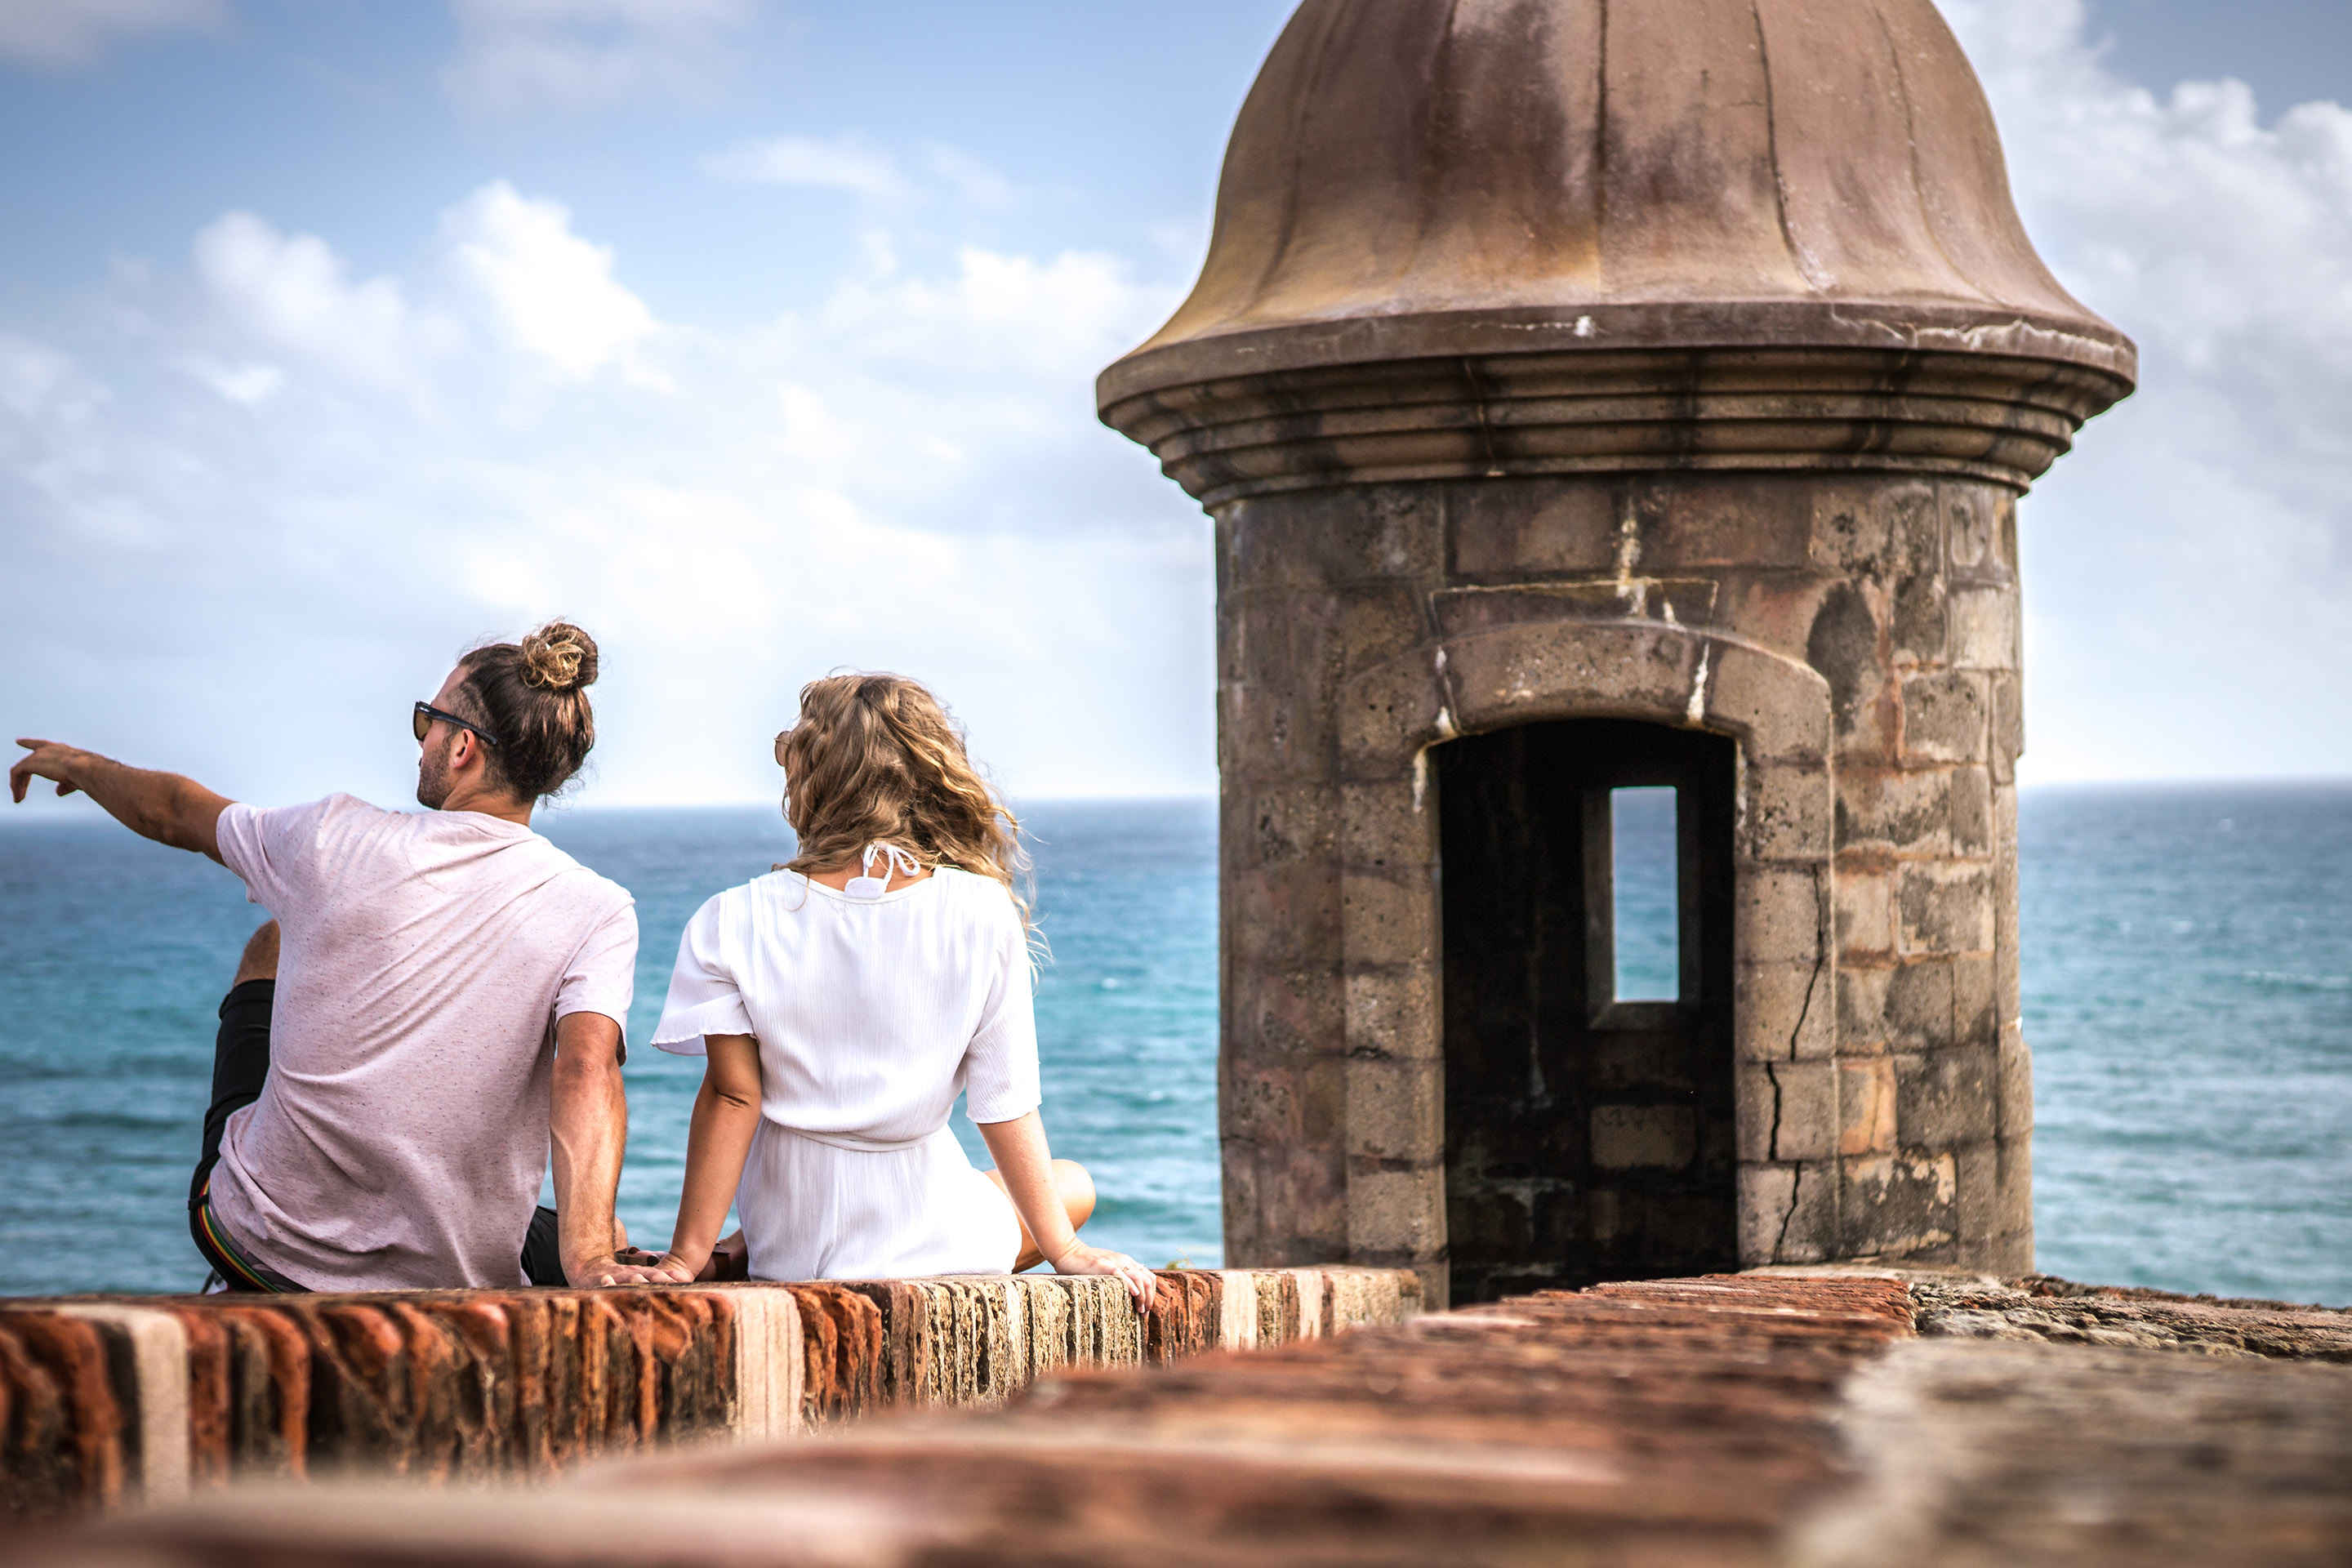 Couple taking in the view in the old city of San Juan, Puerto Rico